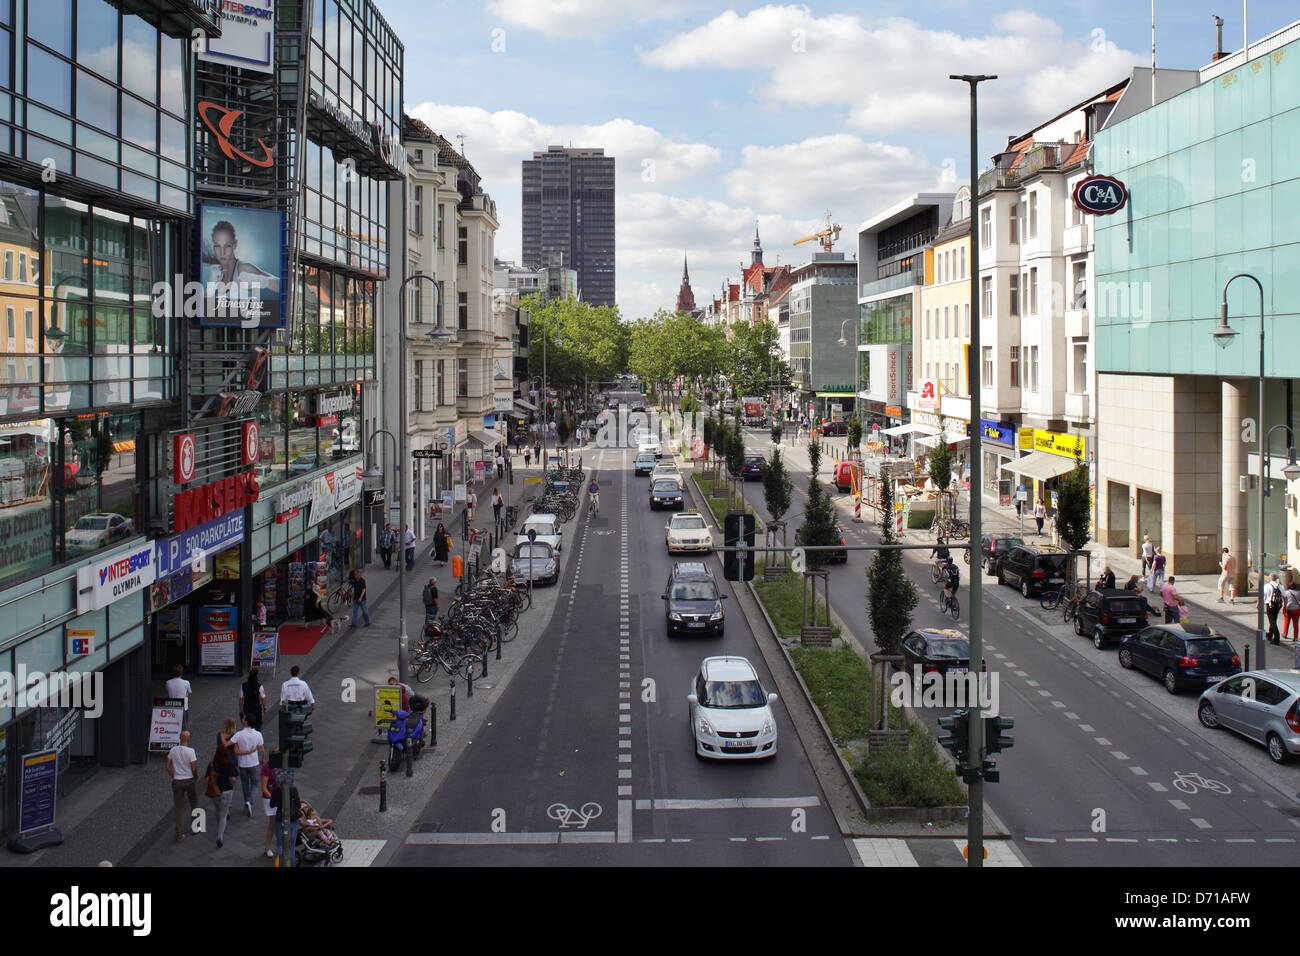 berlin germany the shopping street castle in berlin steglitz stock photo 55963933 alamy. Black Bedroom Furniture Sets. Home Design Ideas